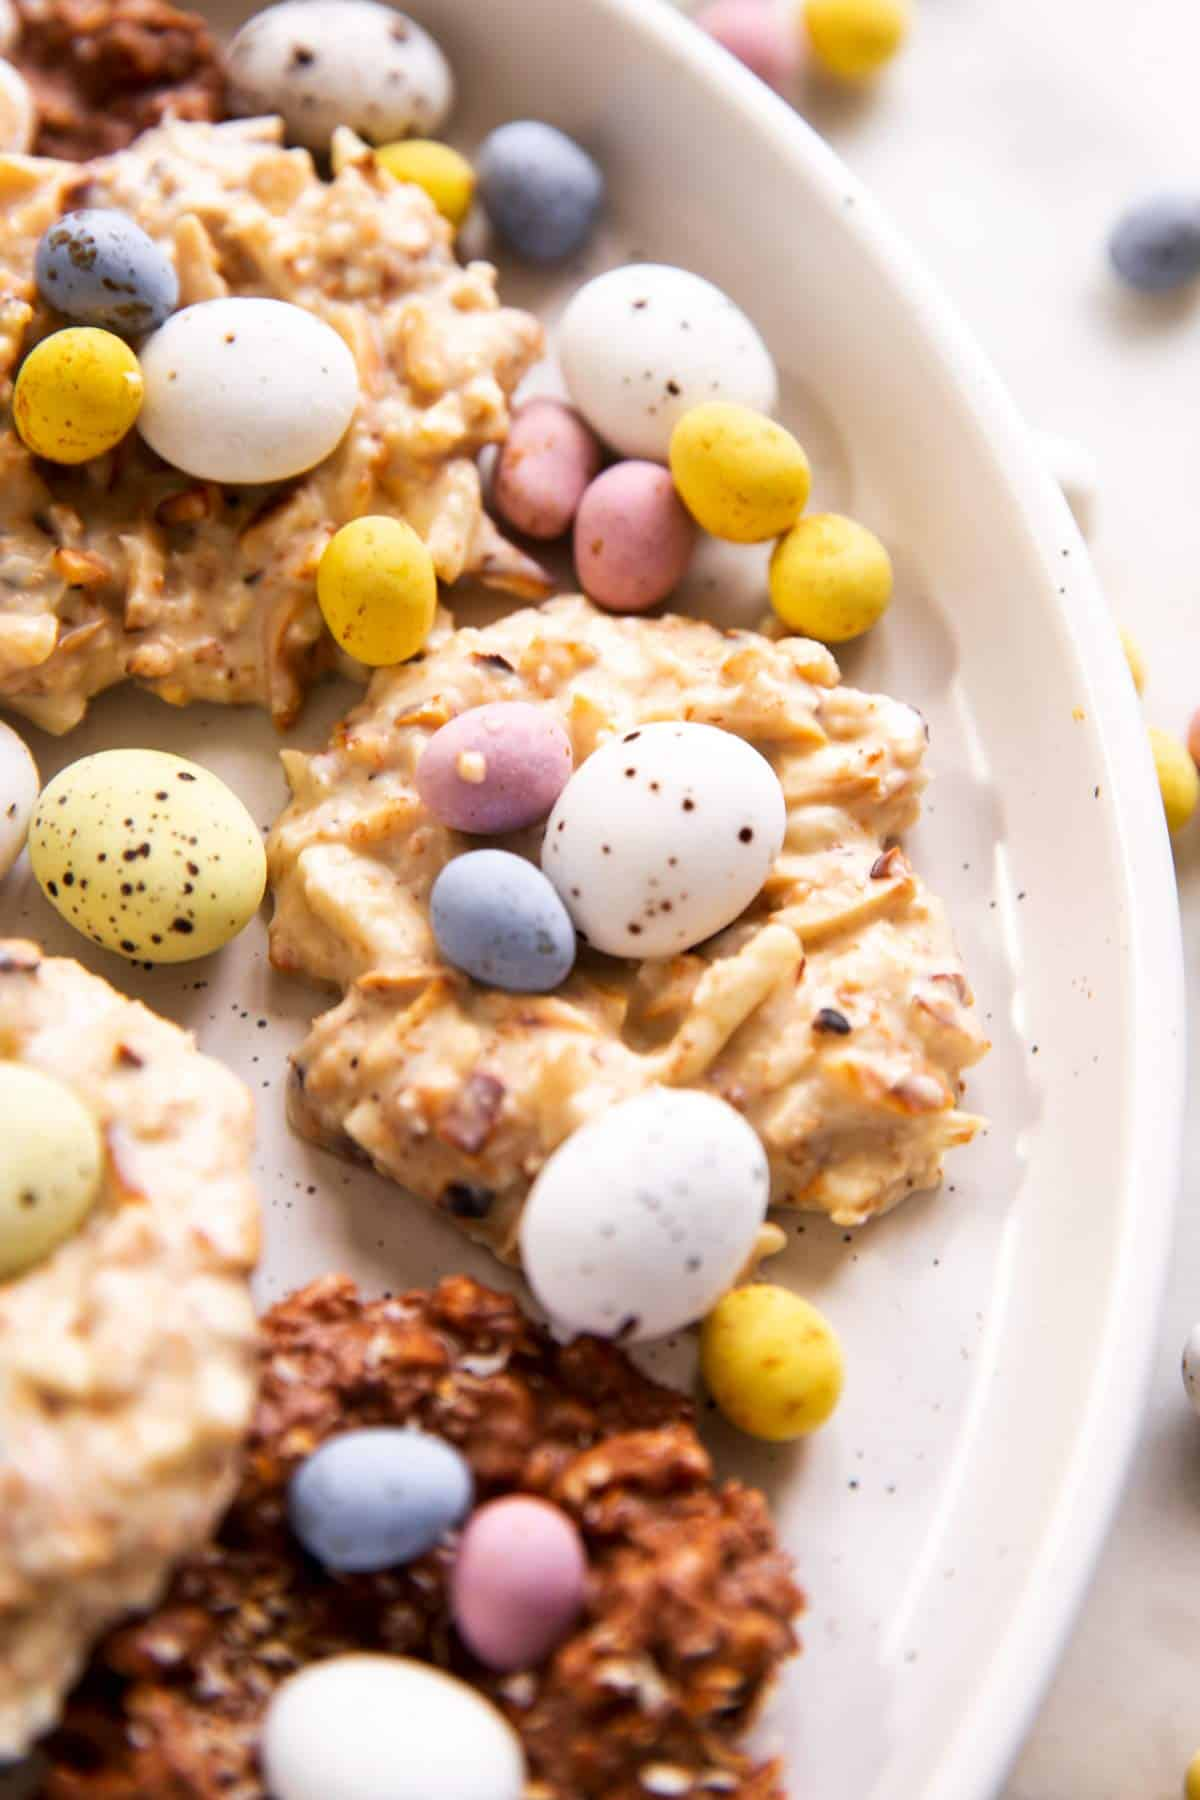 close up photo of white chocolate Bird's nest cookie on plate with several mini eggs and more cookies in background